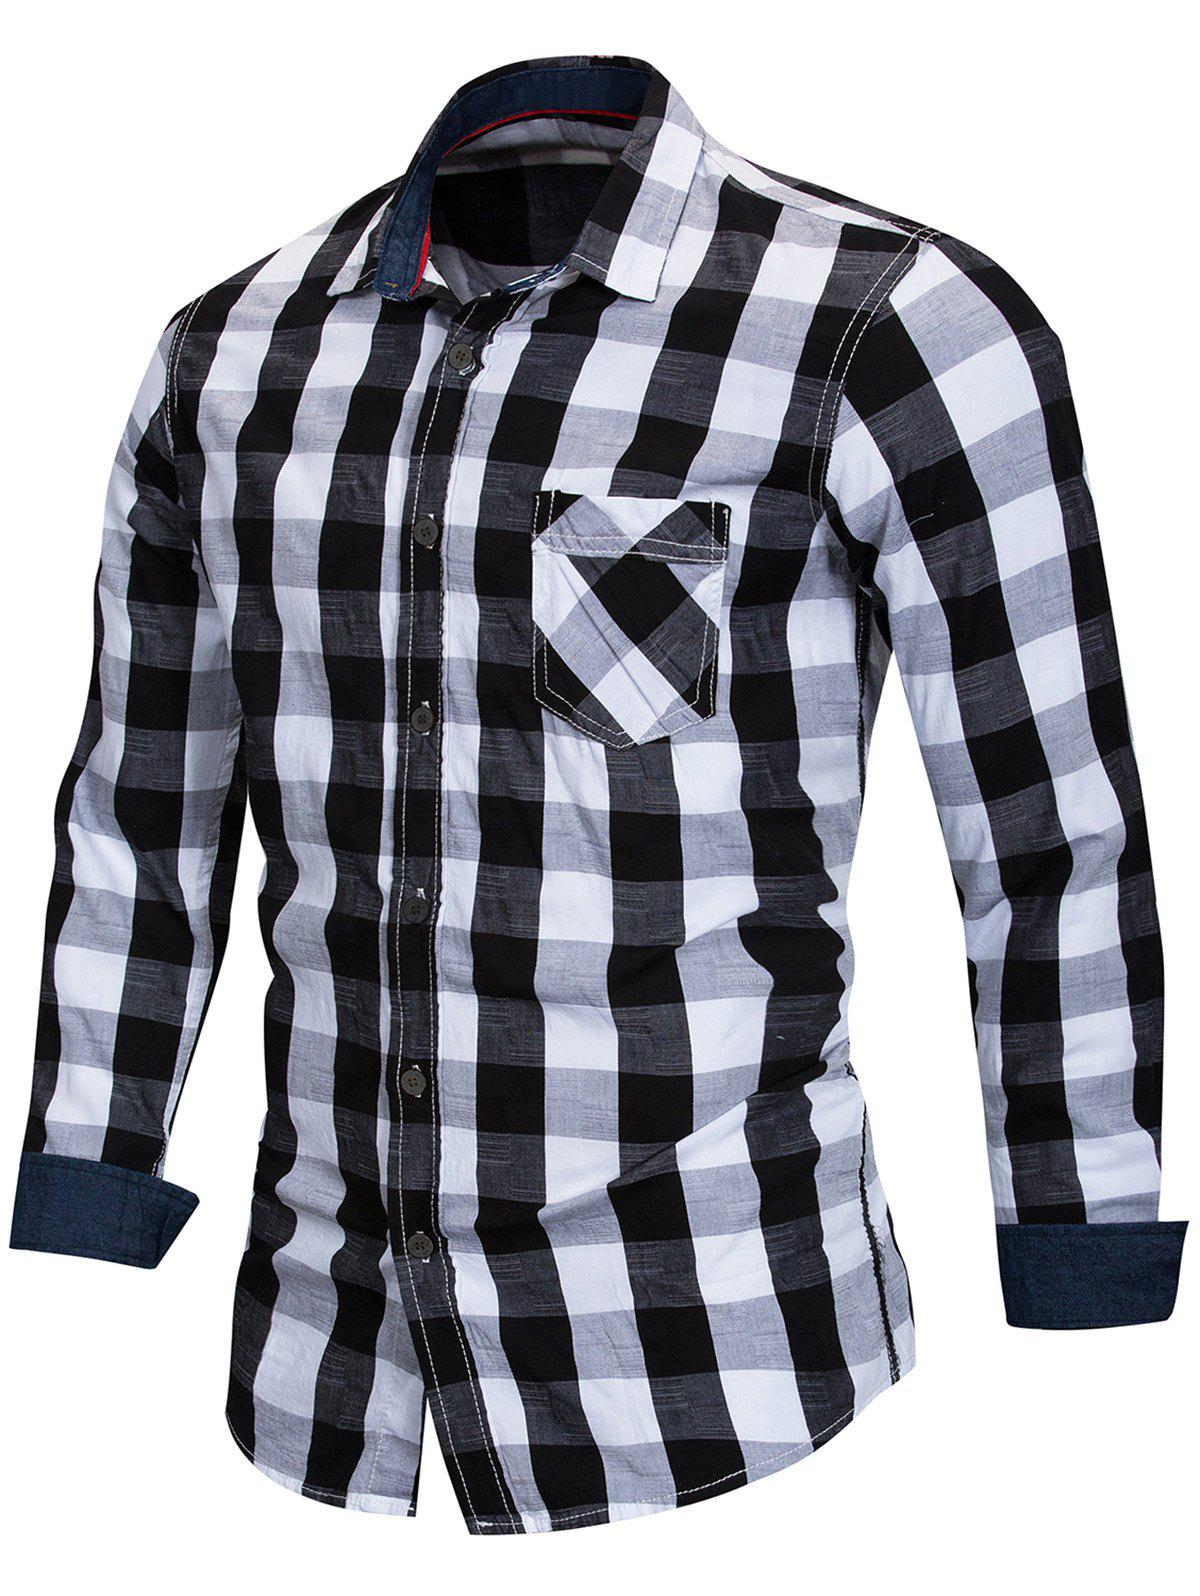 Shops Checked Print Button Up Shirt